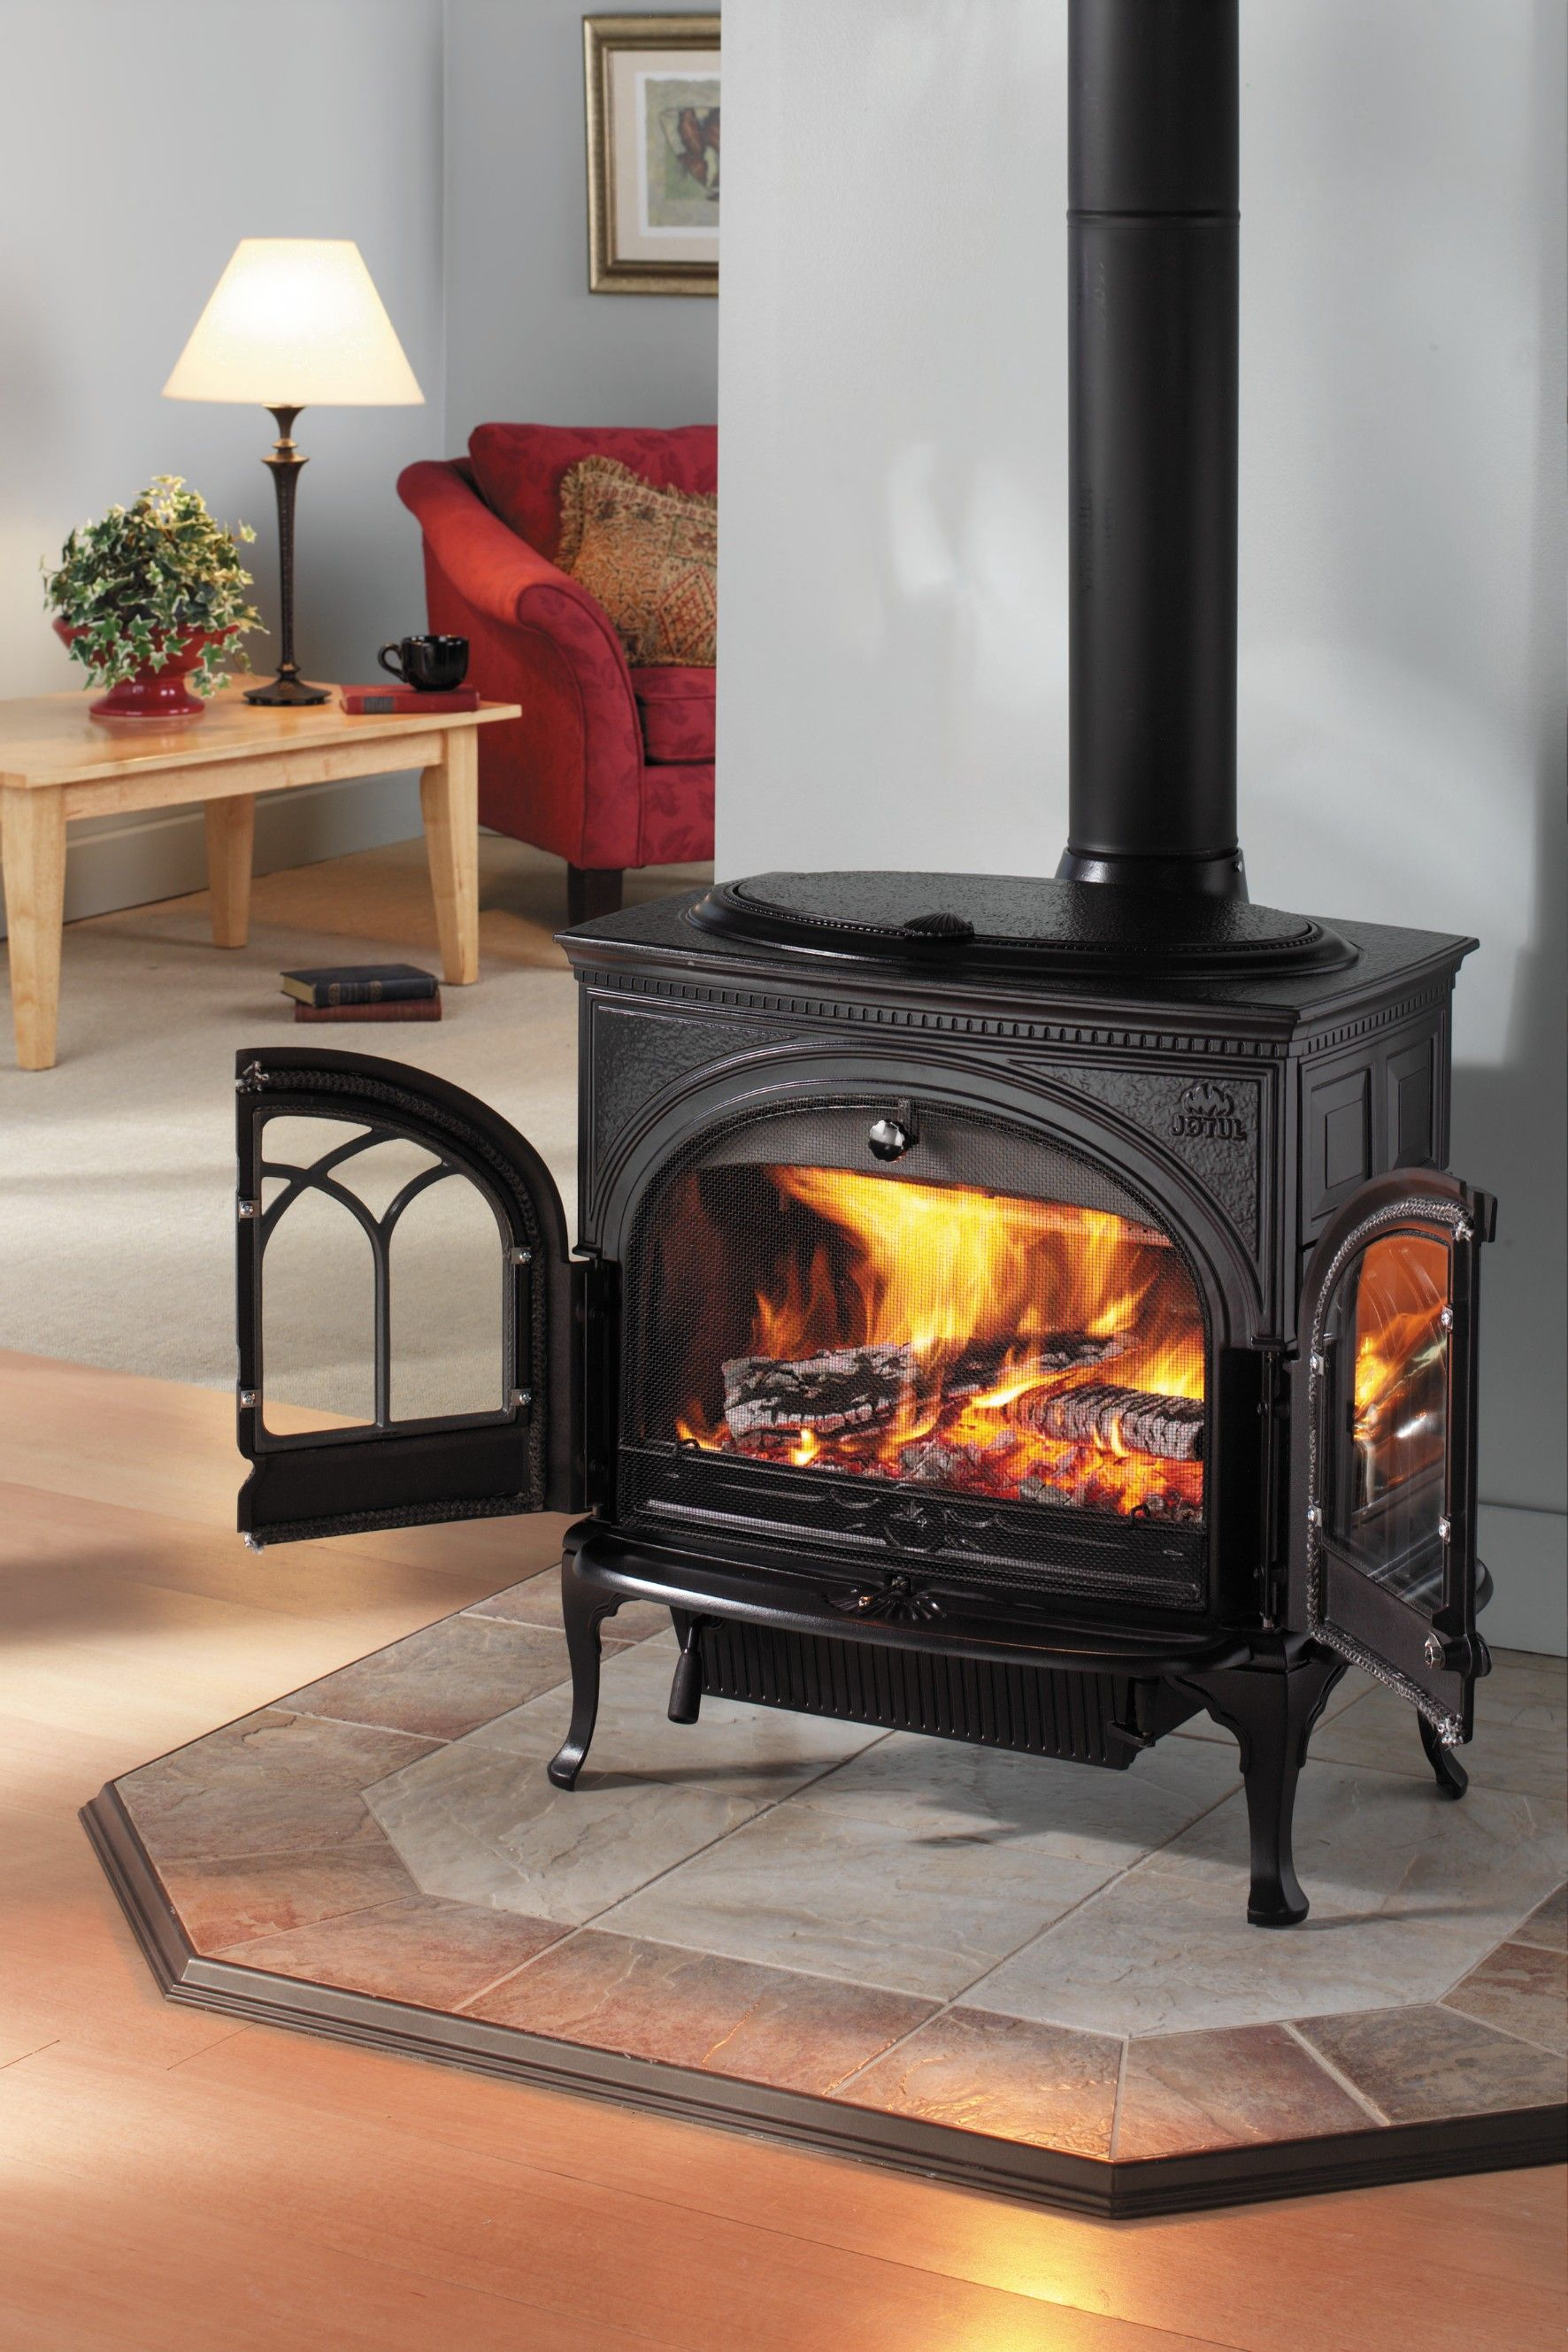 Jotul F 600 Firelight Cb Wood Stove Fireplaces Wood Stove Fireplace Wood Stove Freestanding Fireplace